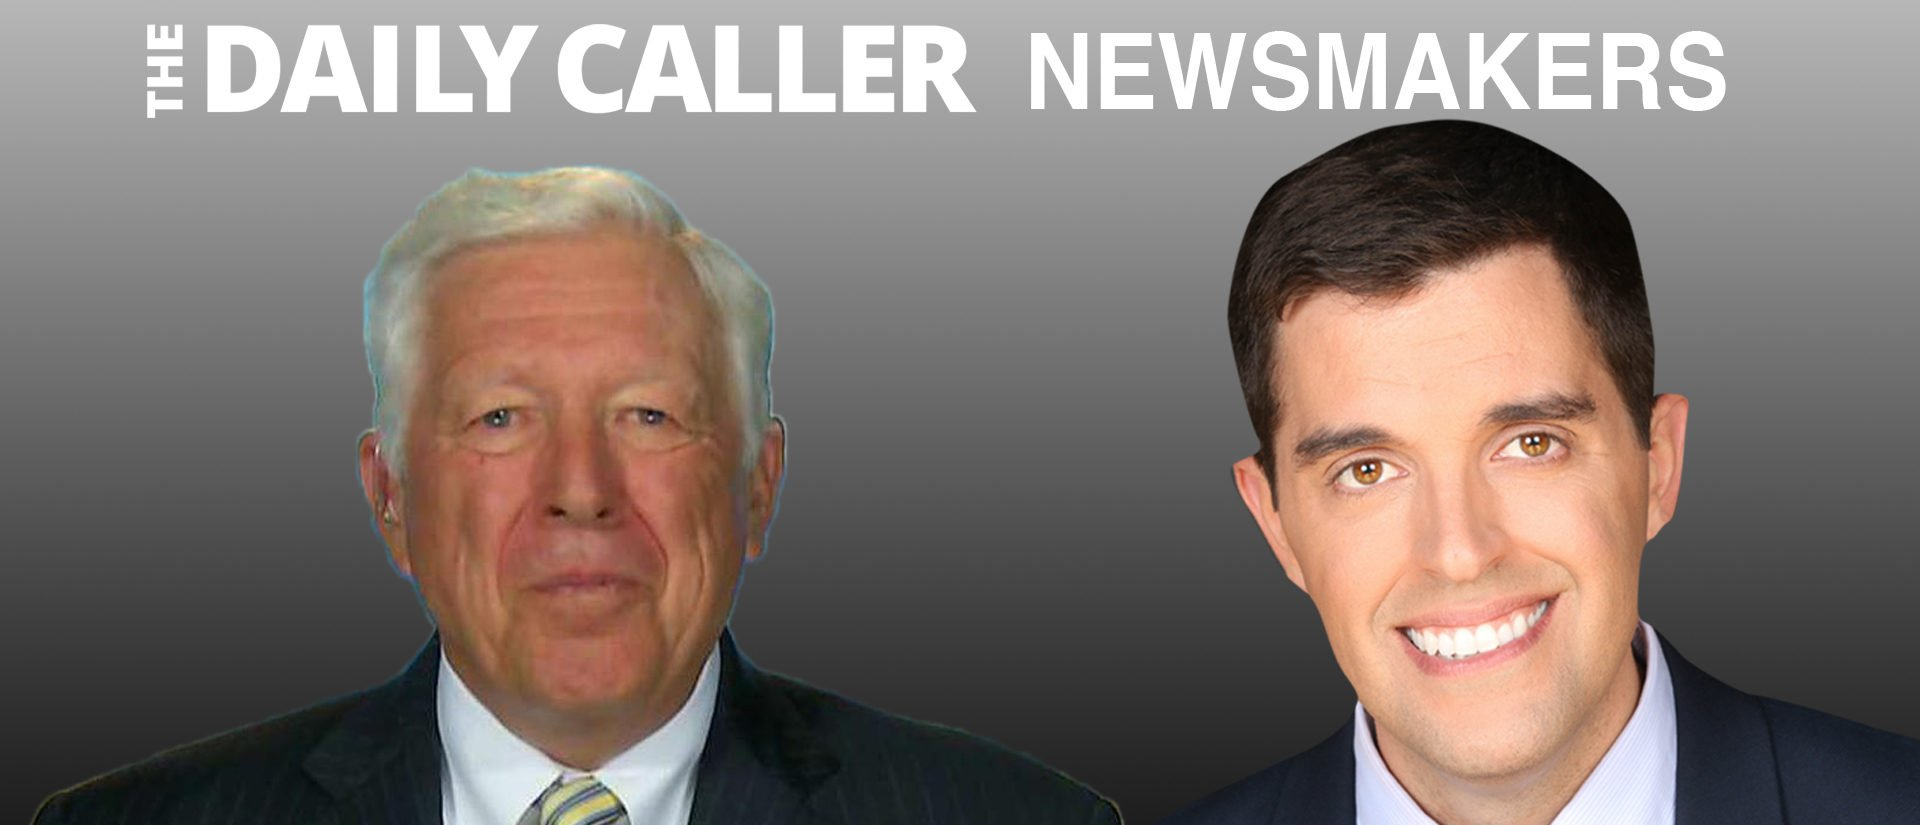 Foster Friess/The Daily Caller